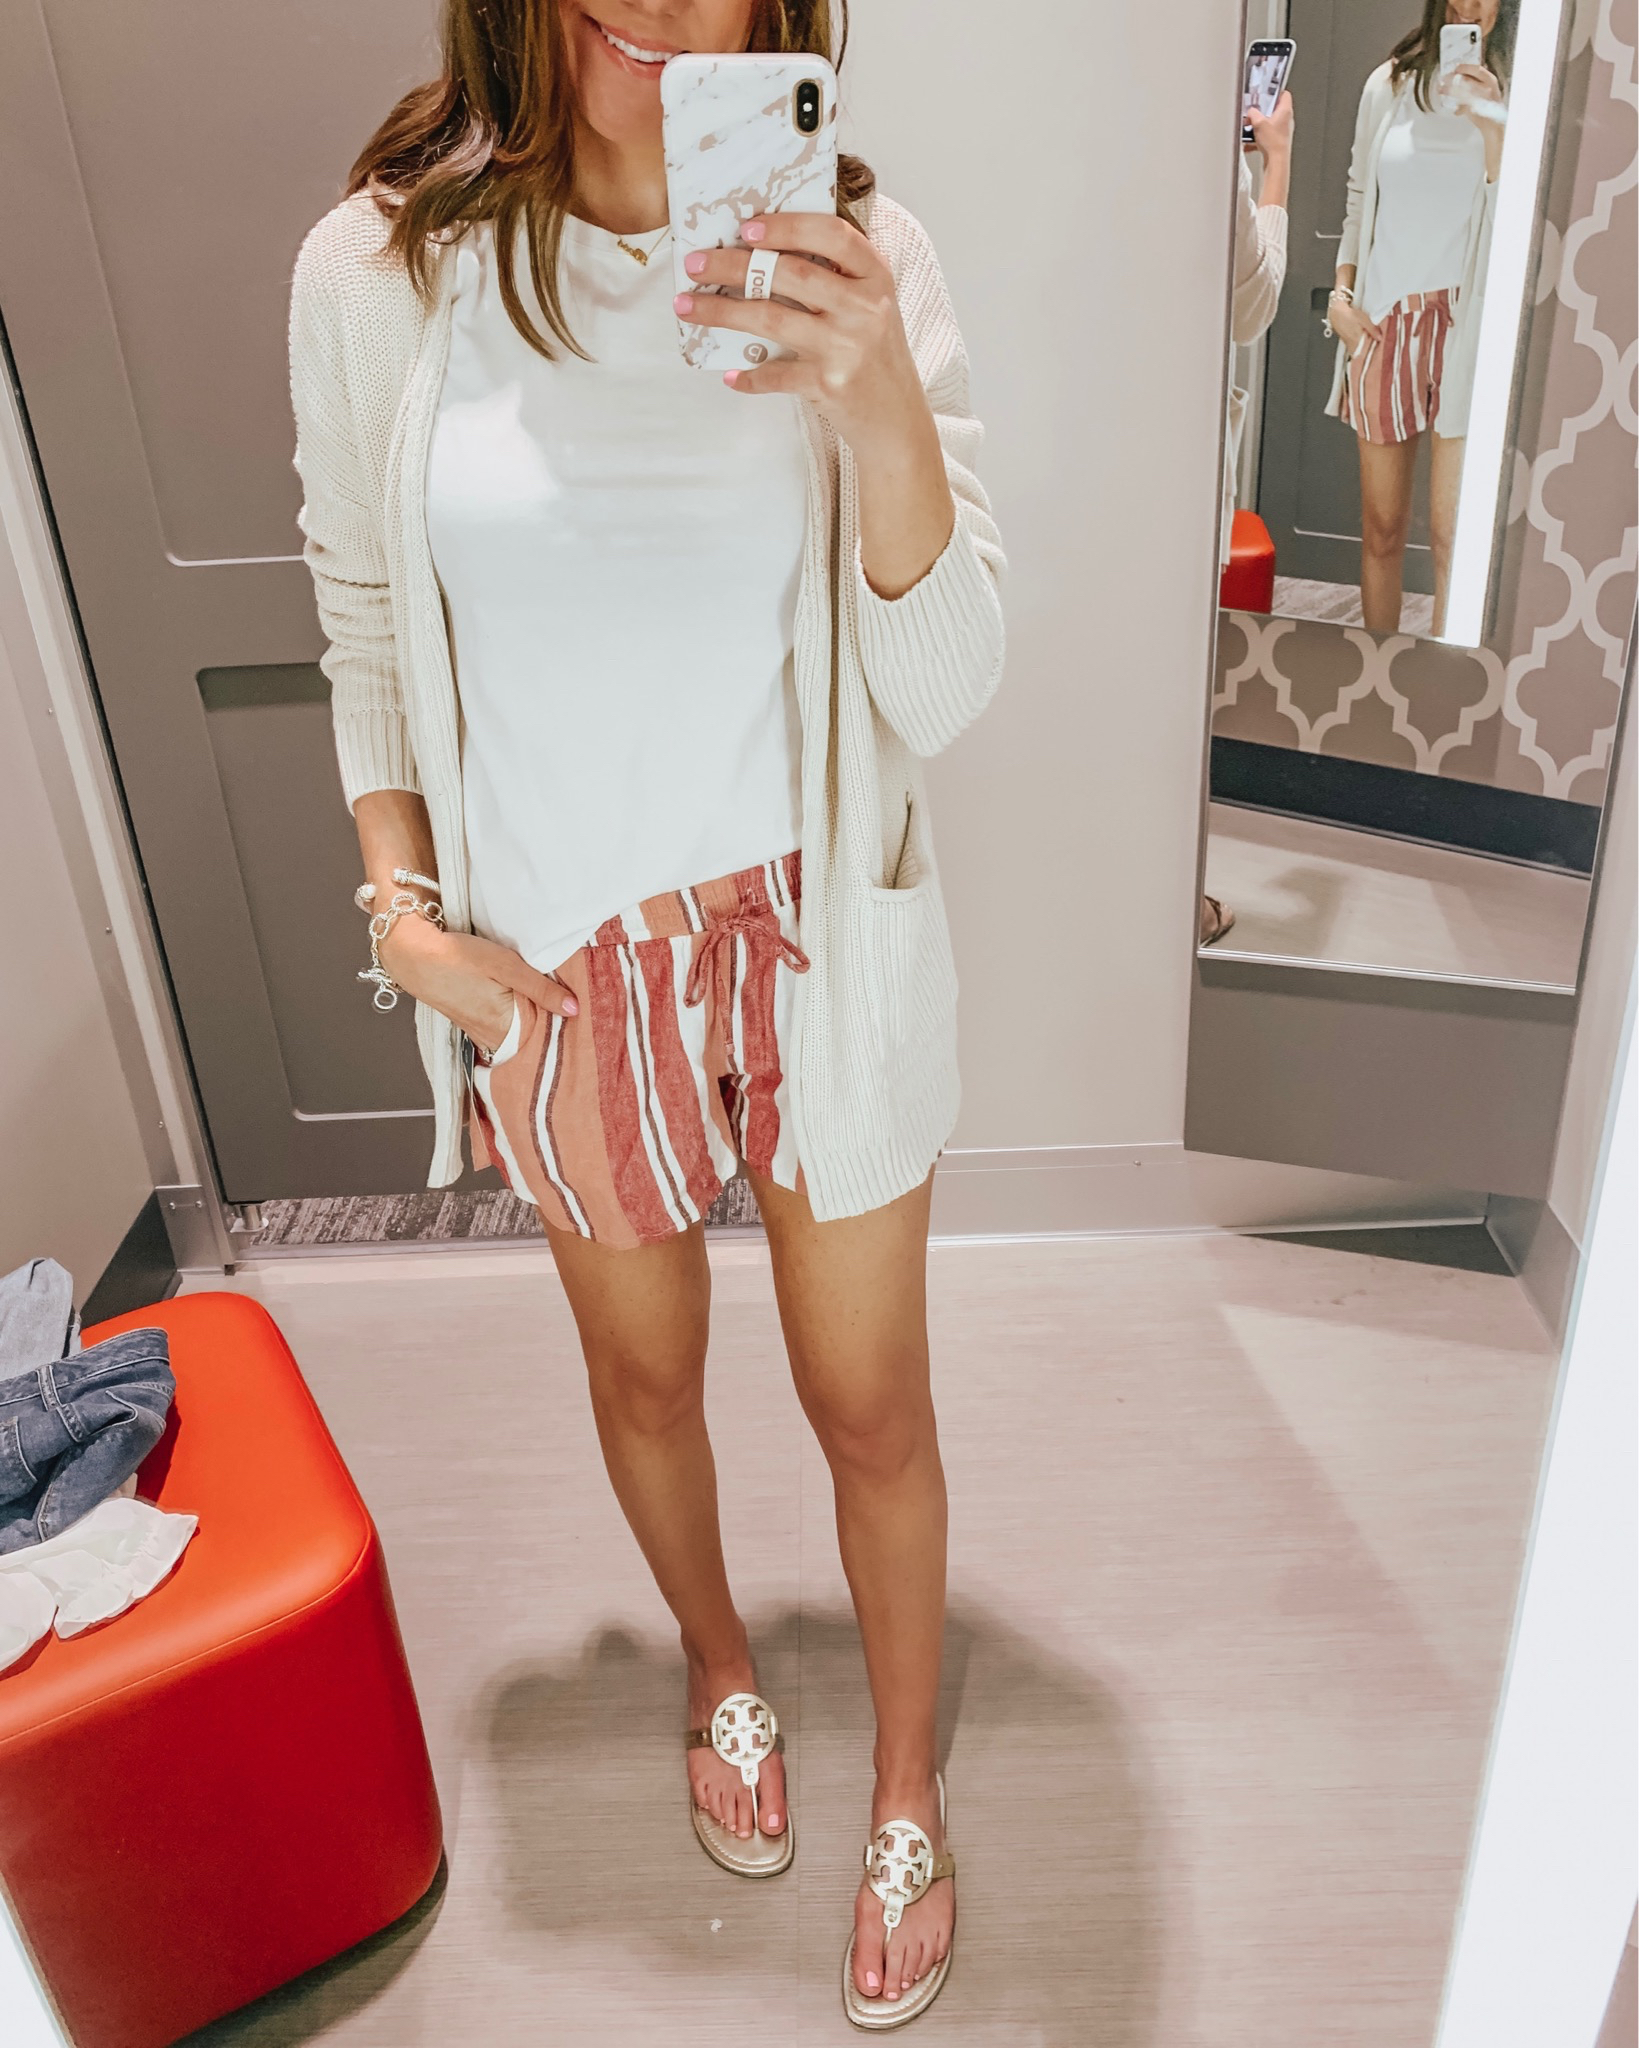 how to shop social media, target try on, Universal Thread pull on shorts, oversized cardigan